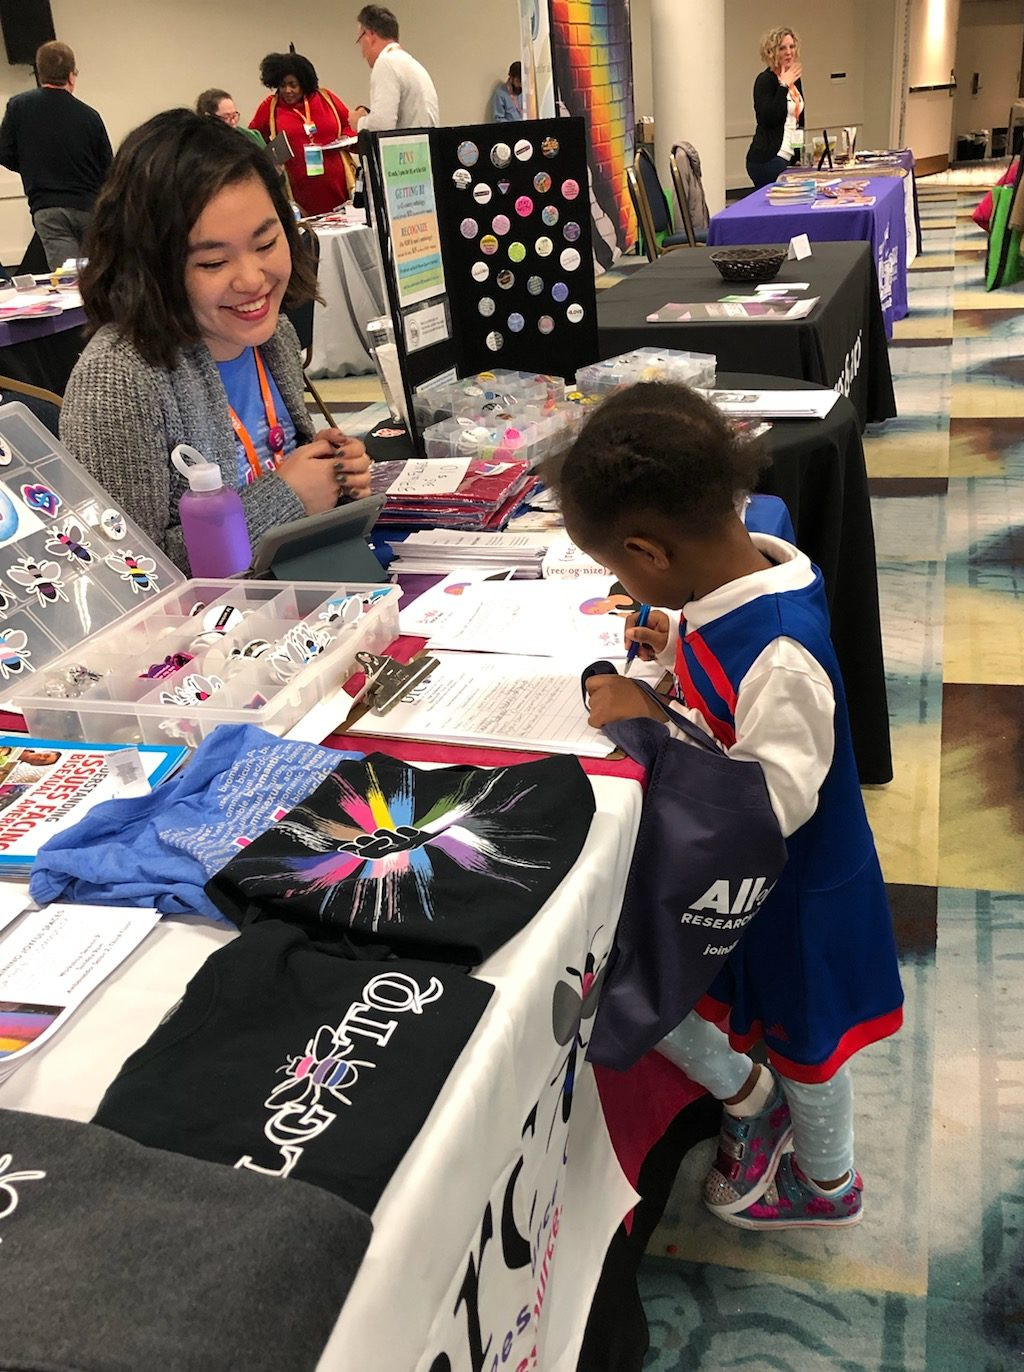 BRC board member behind merchandise table smiles at a young child who draws on the sign-up sheet